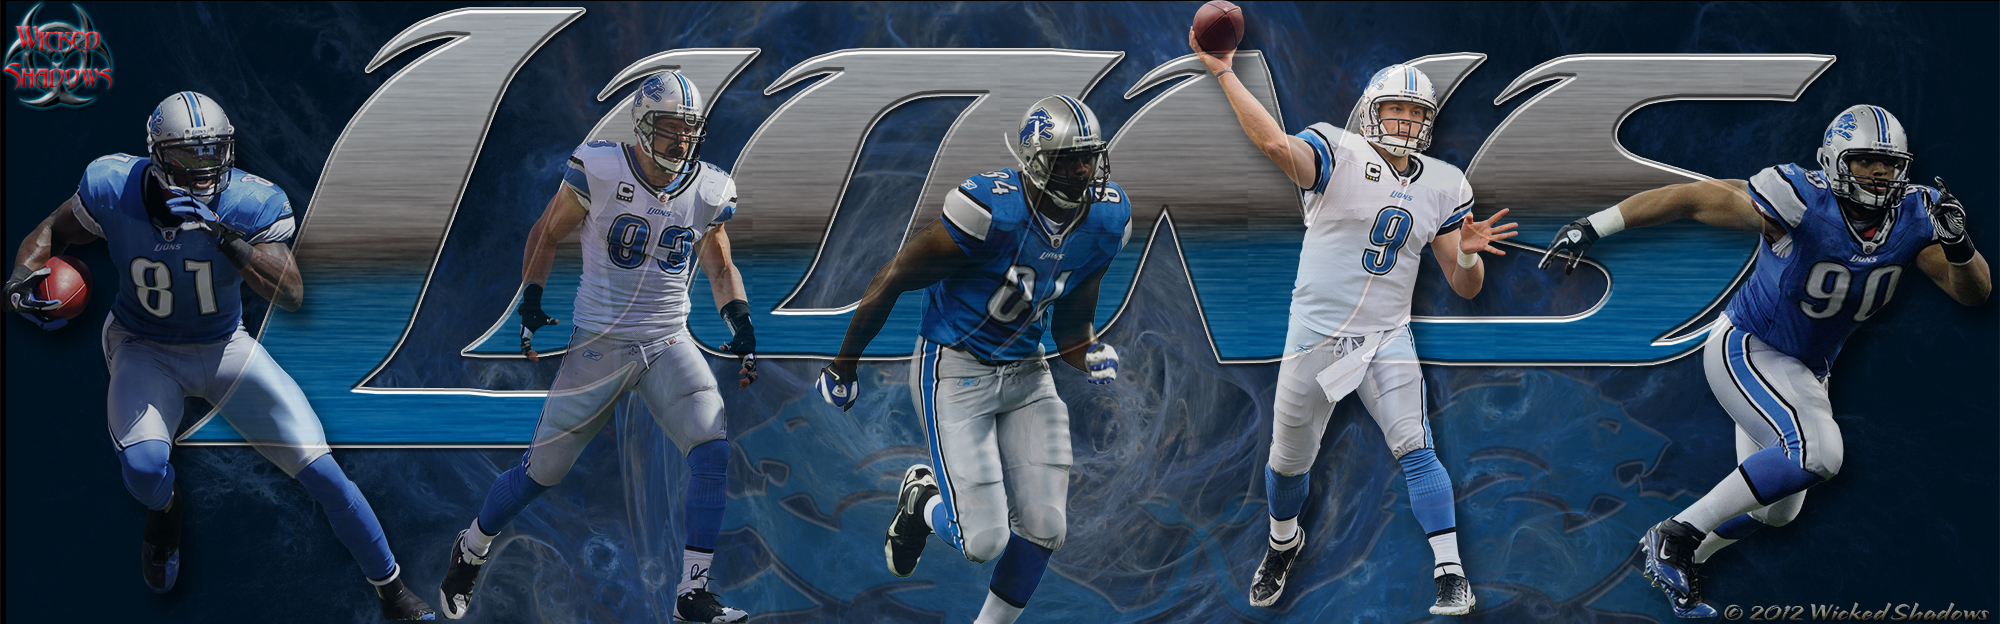 Wallpapers By Wicked Shadows Detroit Lions NFL wallpapers 2000x624